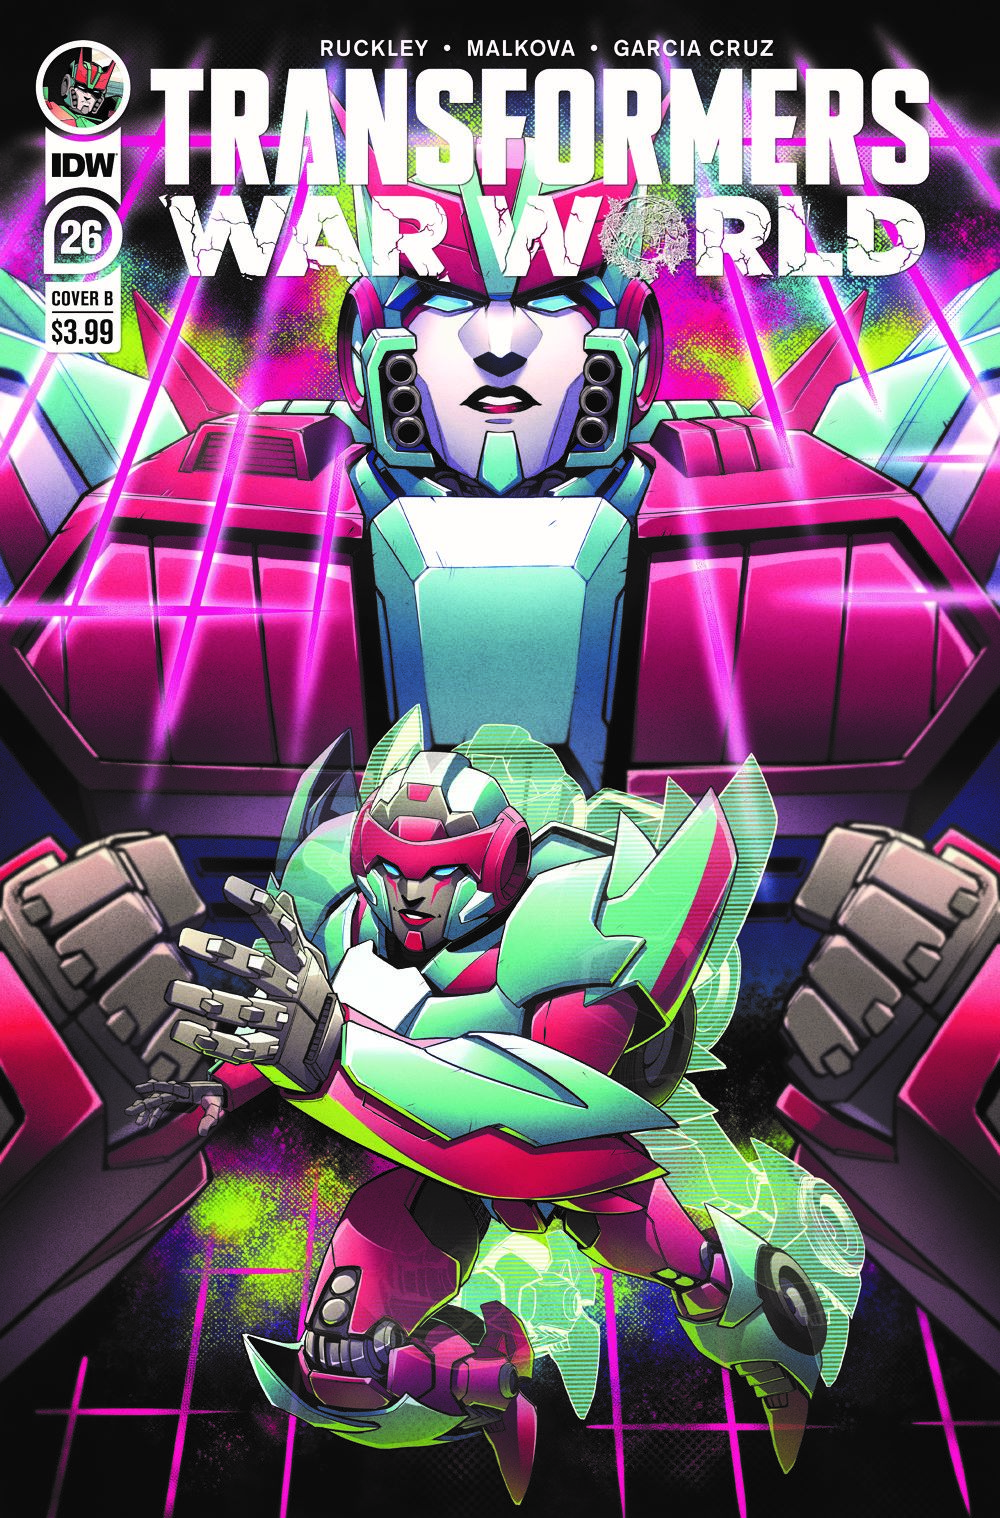 TF26-cvr-B ComicList: IDW Publishing New Releases for 01/06/2021